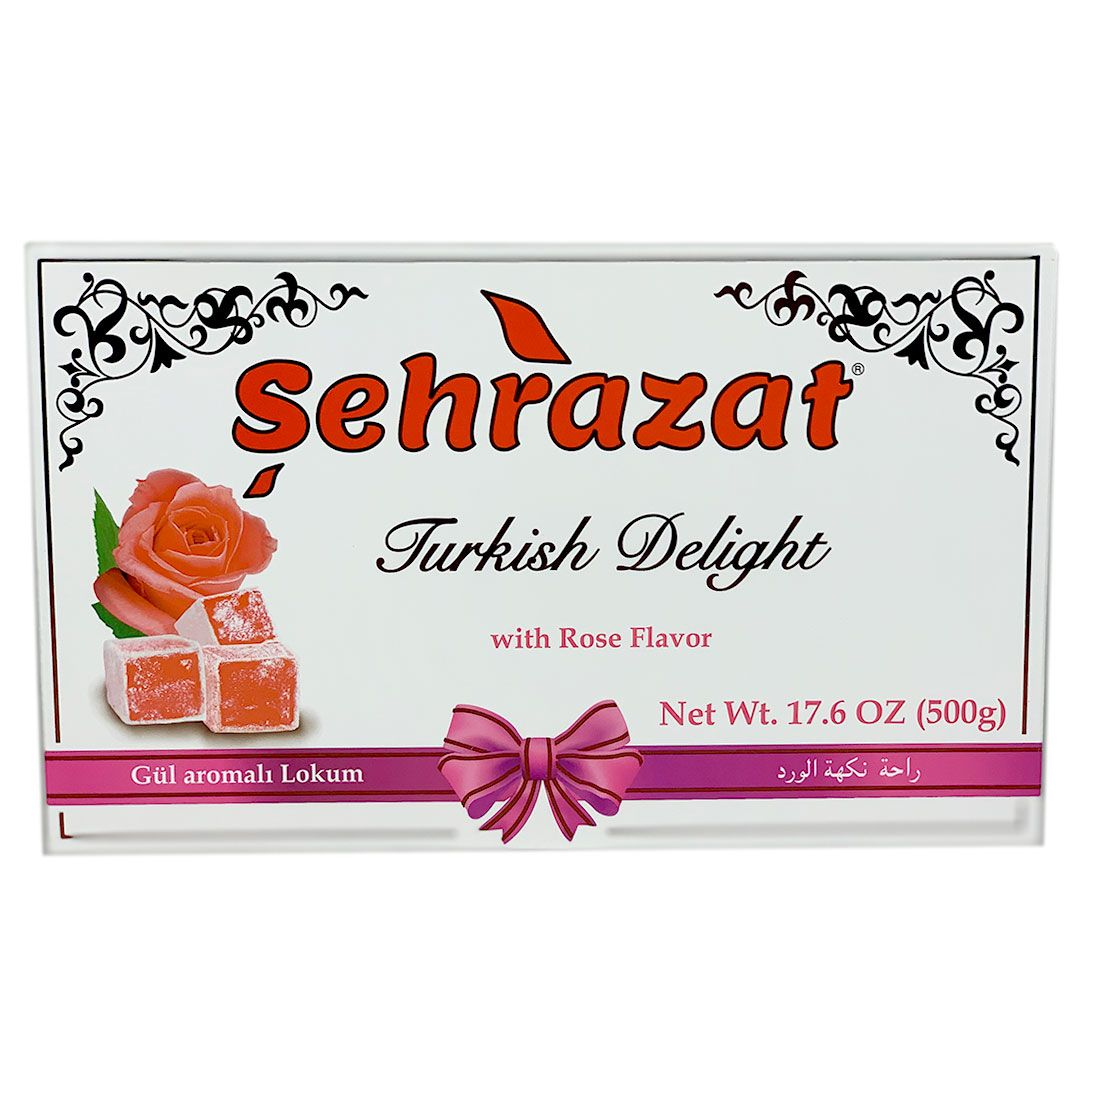 Sehrazat Turkish Delights Traditional Rose Flavored | Gul Aromali Turk Lokum | 1.1lbs